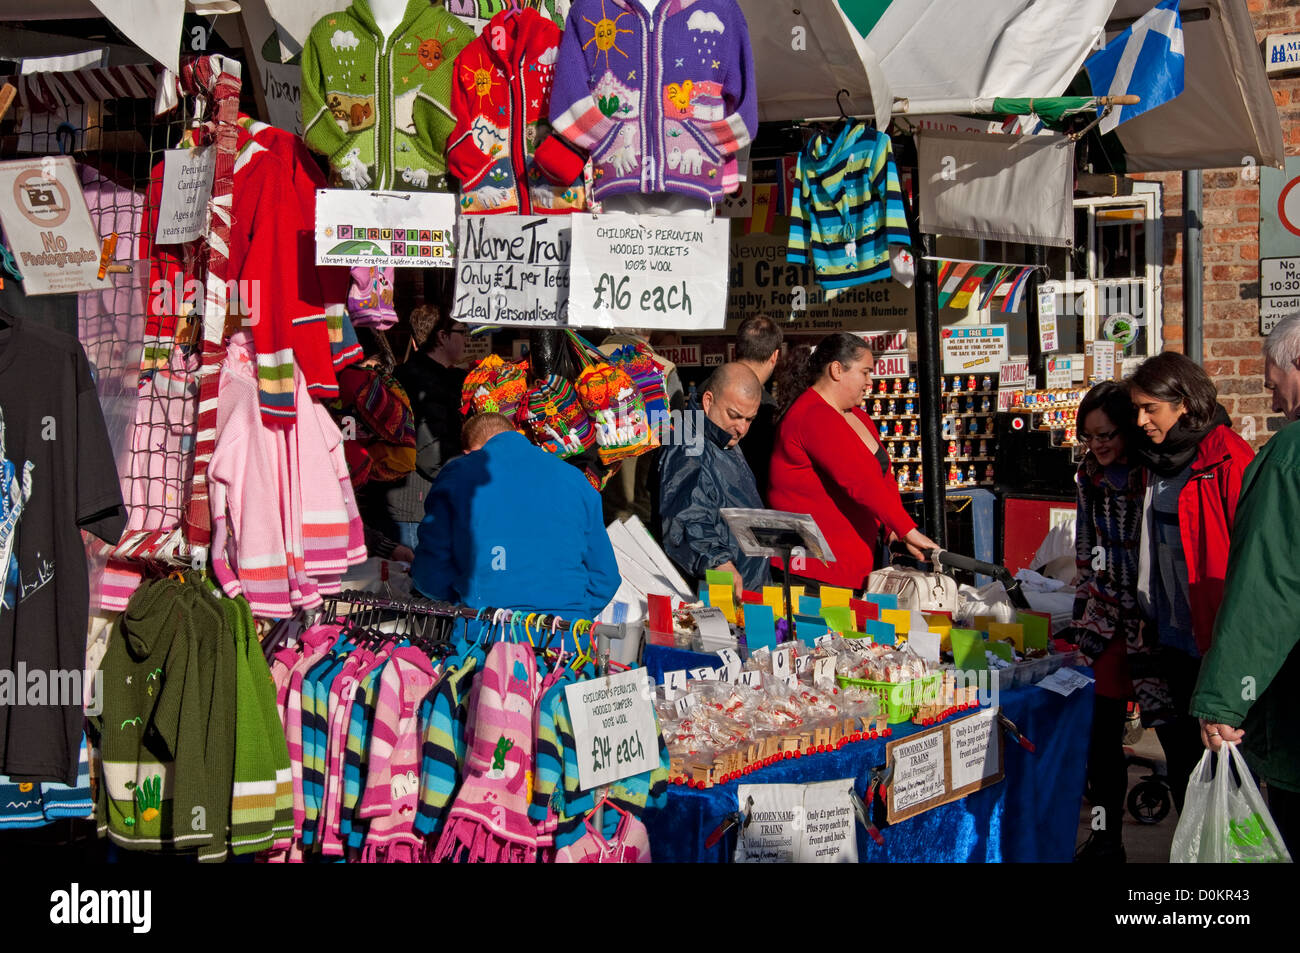 Childrens clothing for sale on market stall York North Yorkshire England UK United Kingdom GB Great Britain - Stock Image